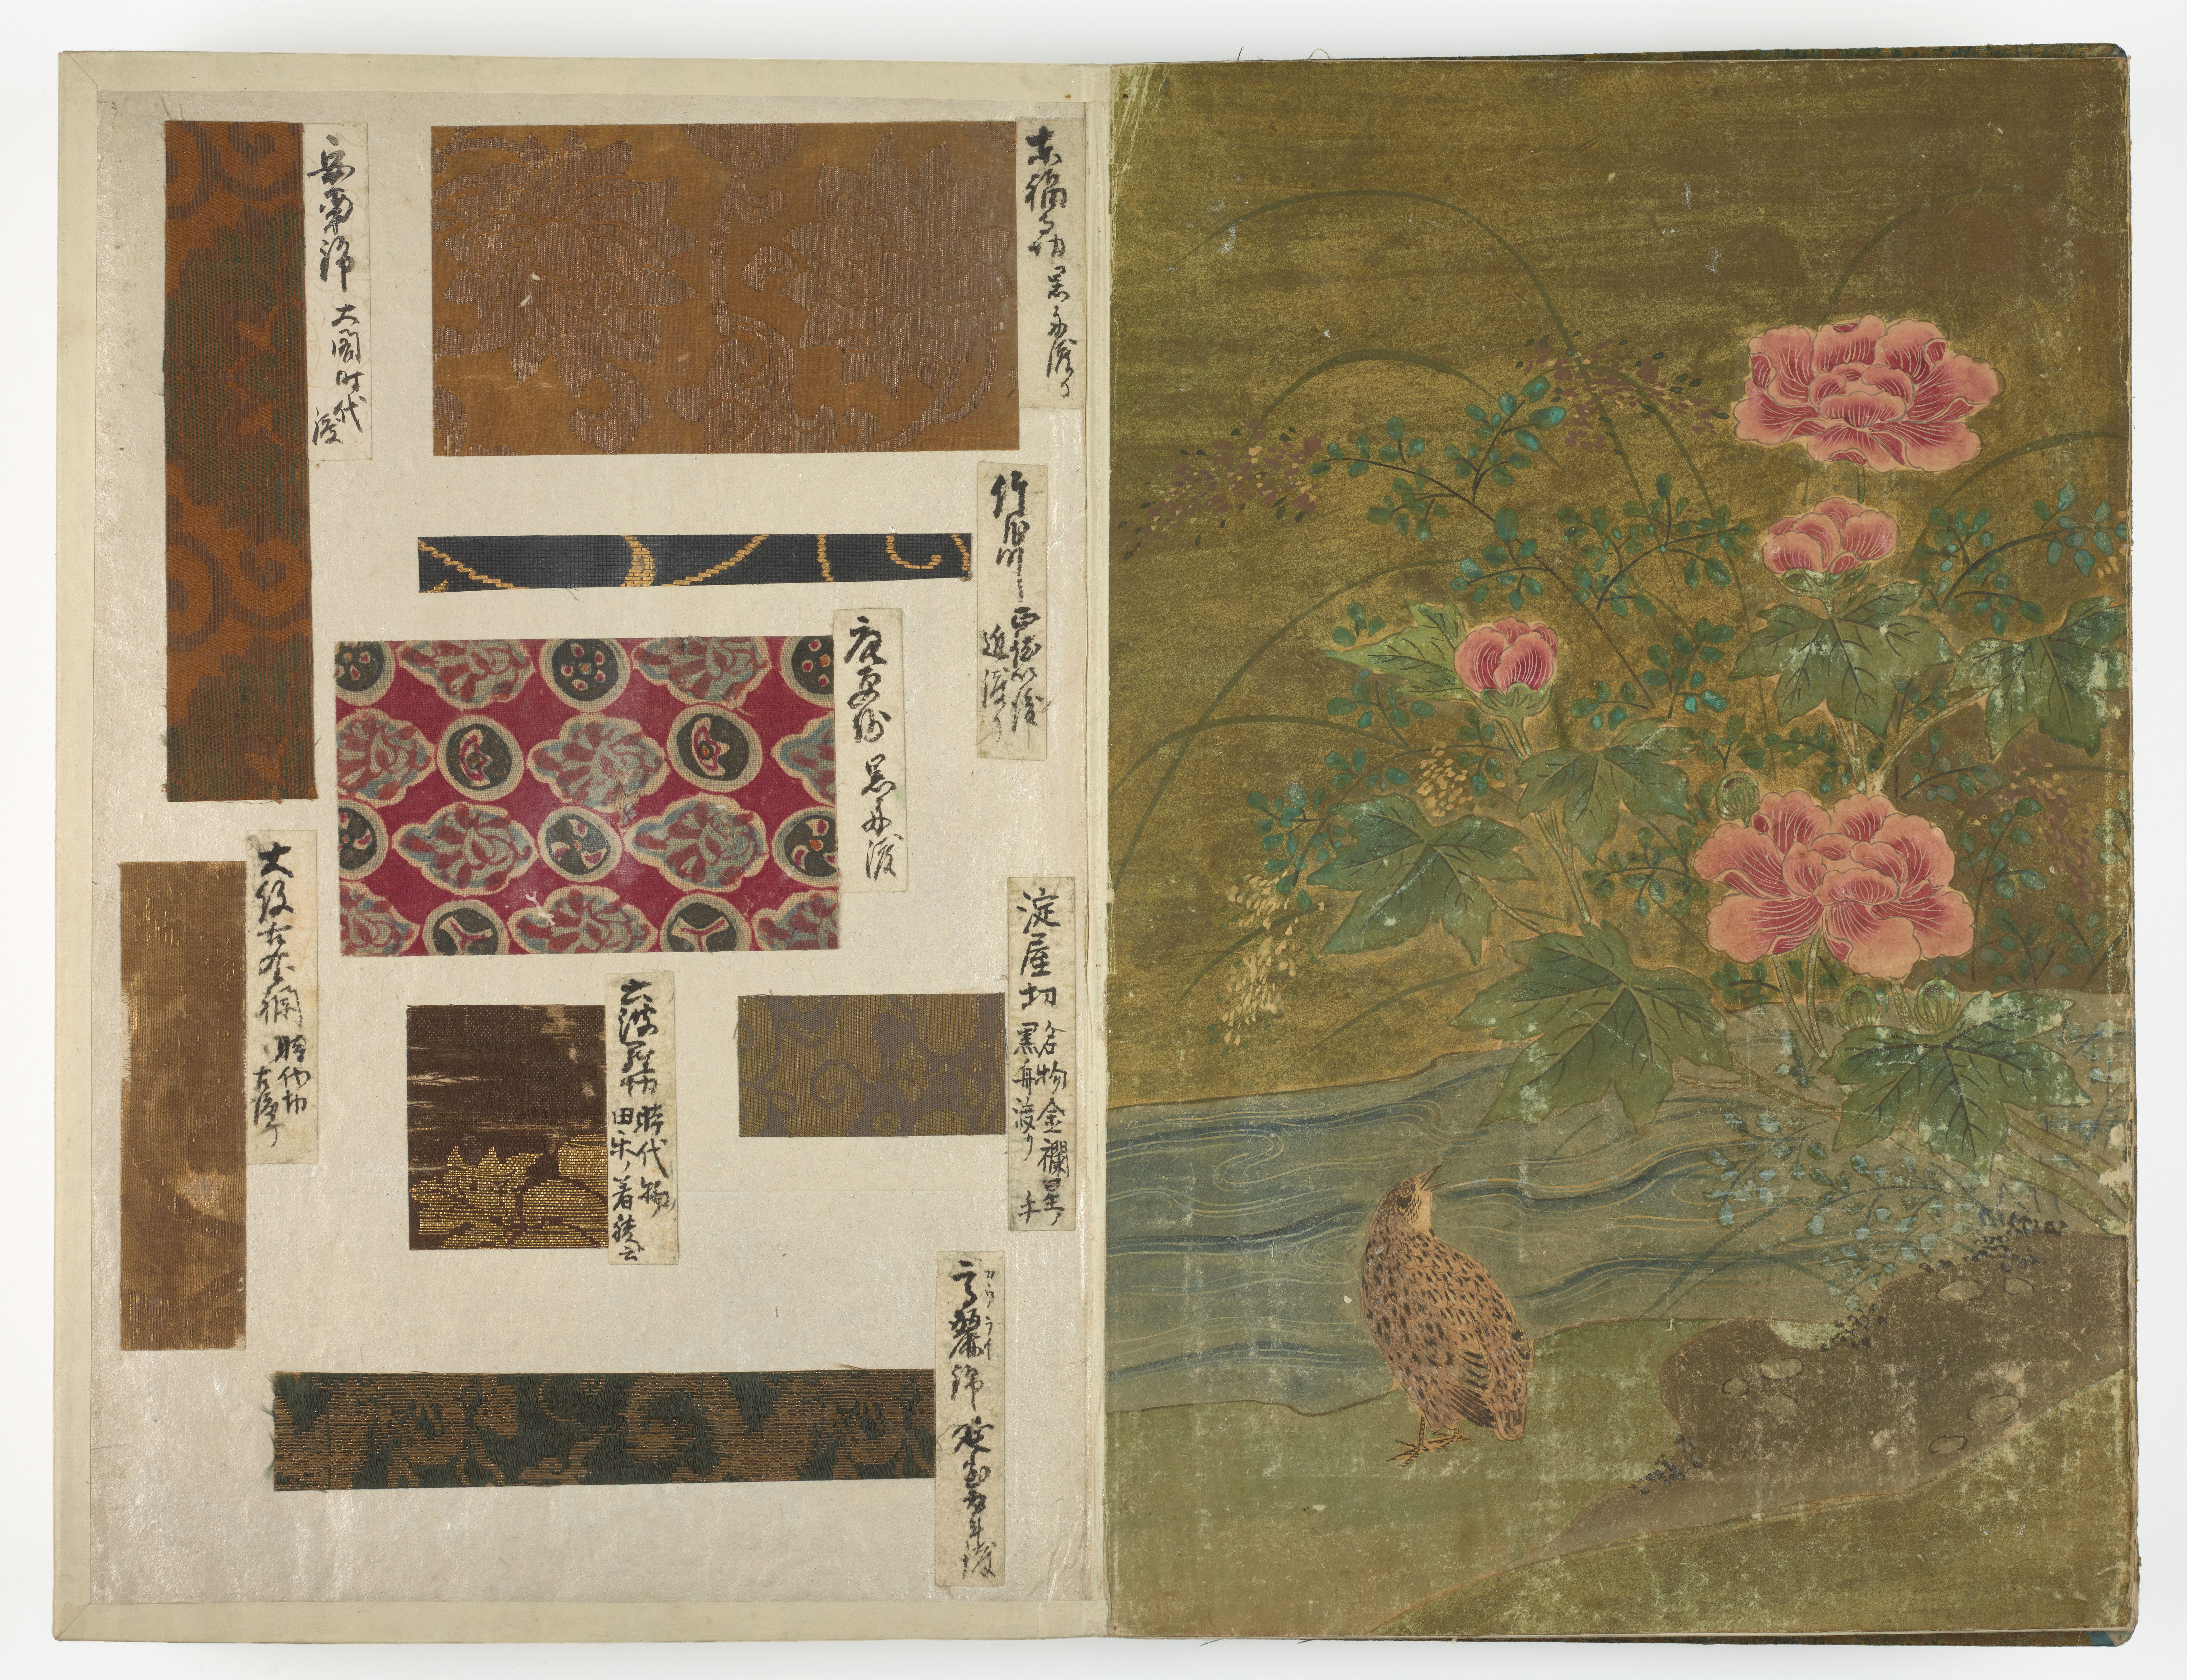 Collage of textile fragments with Japanese writing and floral motifs.